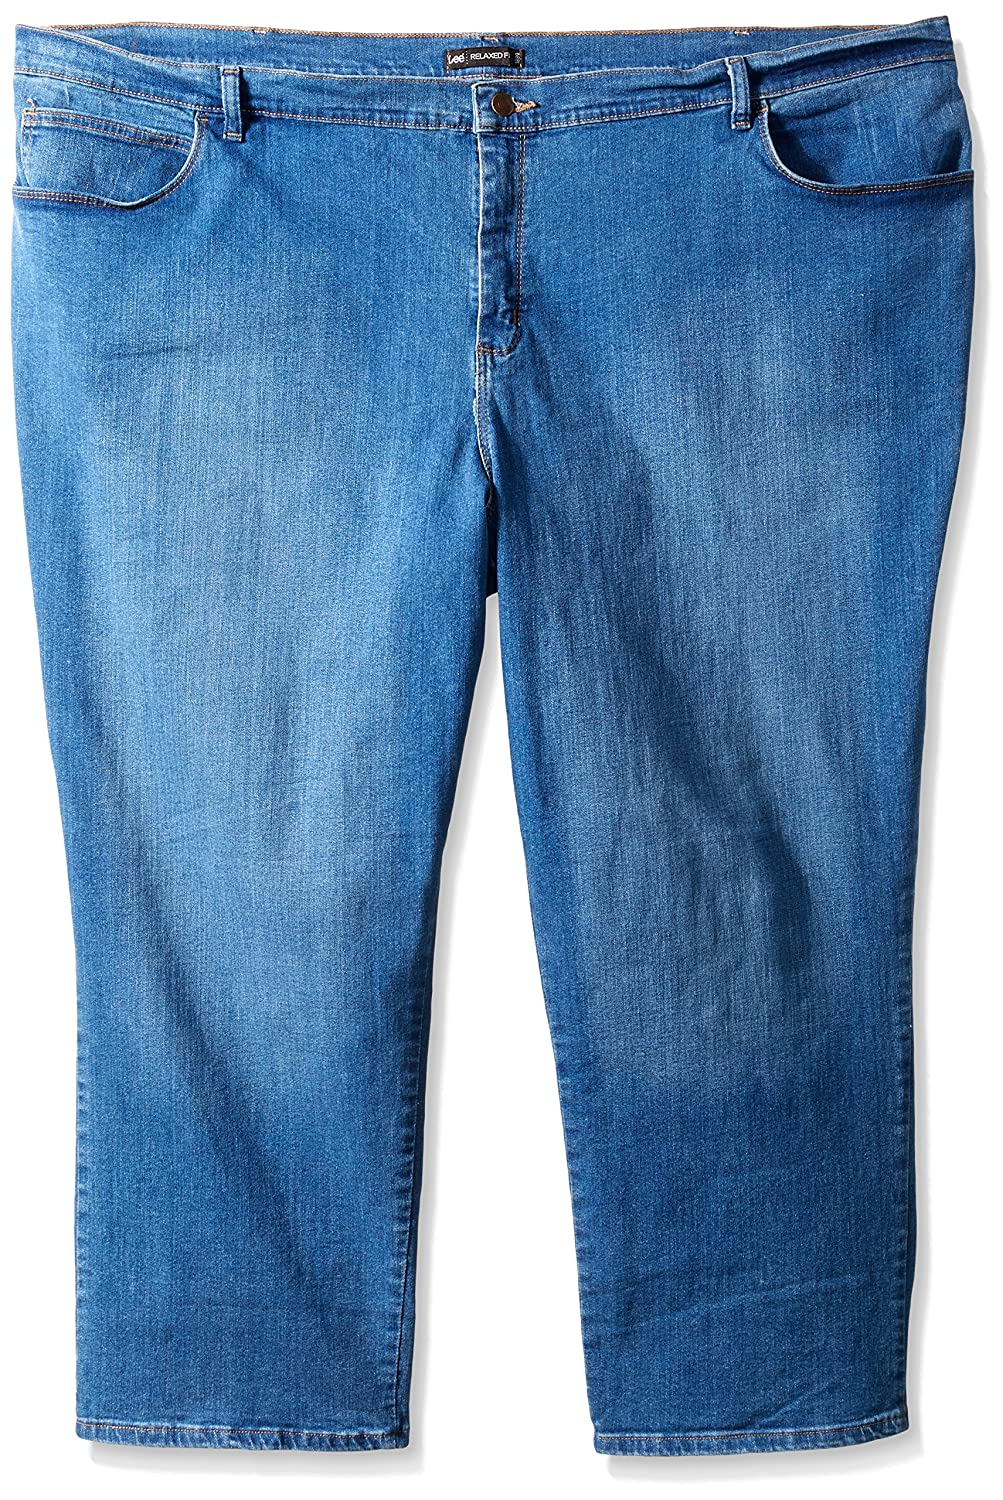 Lee Women's Plus-Size Relaxed Fit Straight Leg Jean Lee Women' s Collection 30718W CA-LJWRFS-PARENT